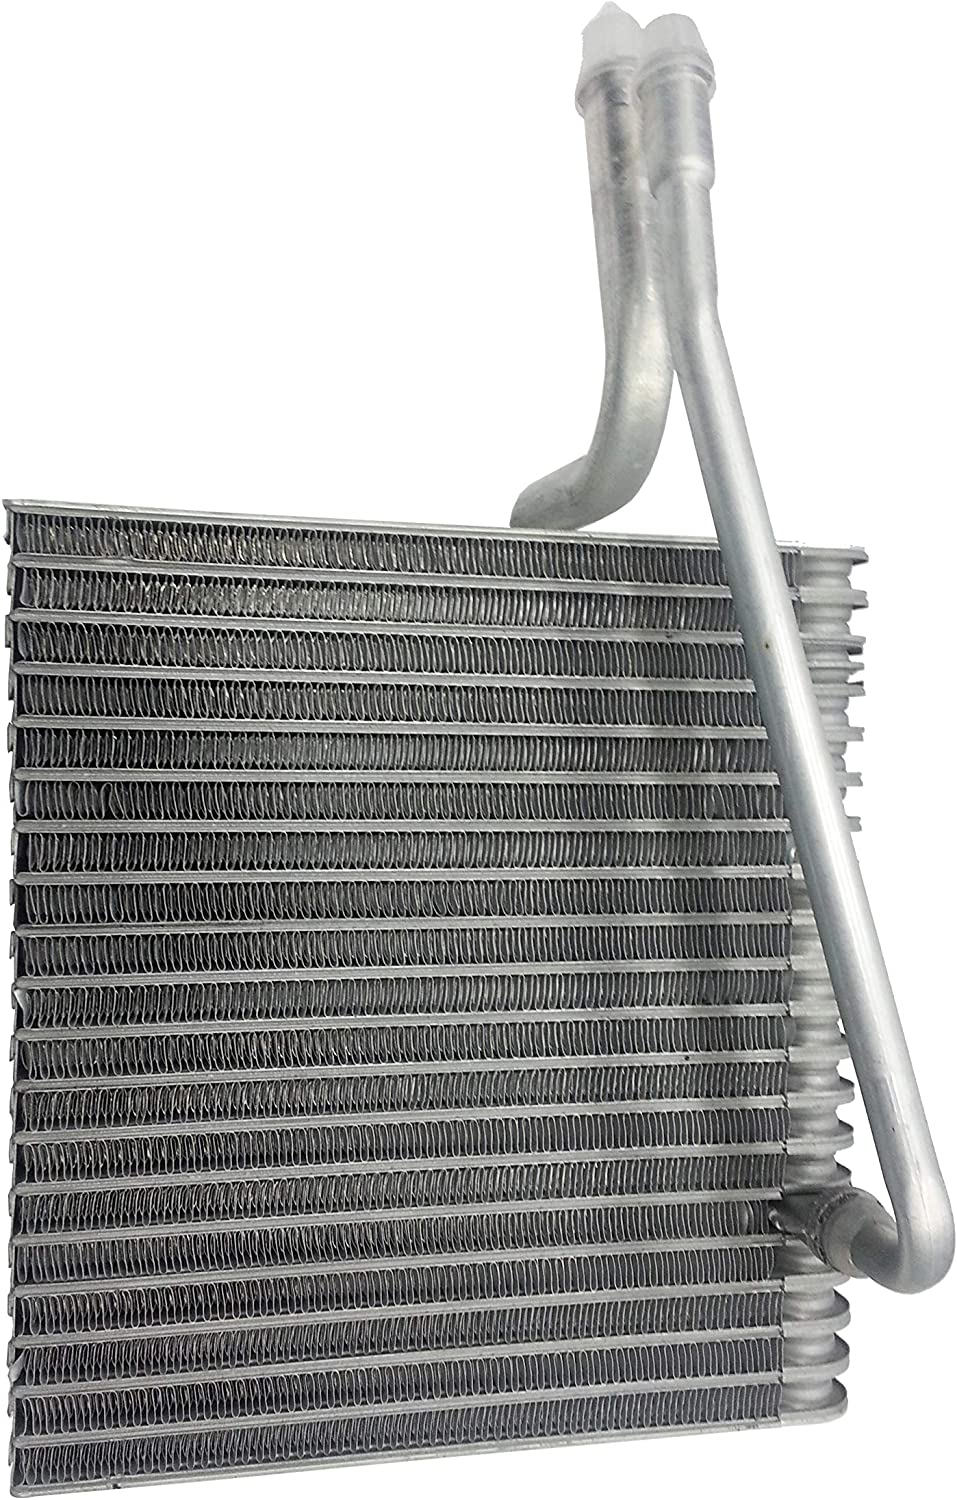 NEW Replacement 5140726AD Evaporator Core for Dodge Ram